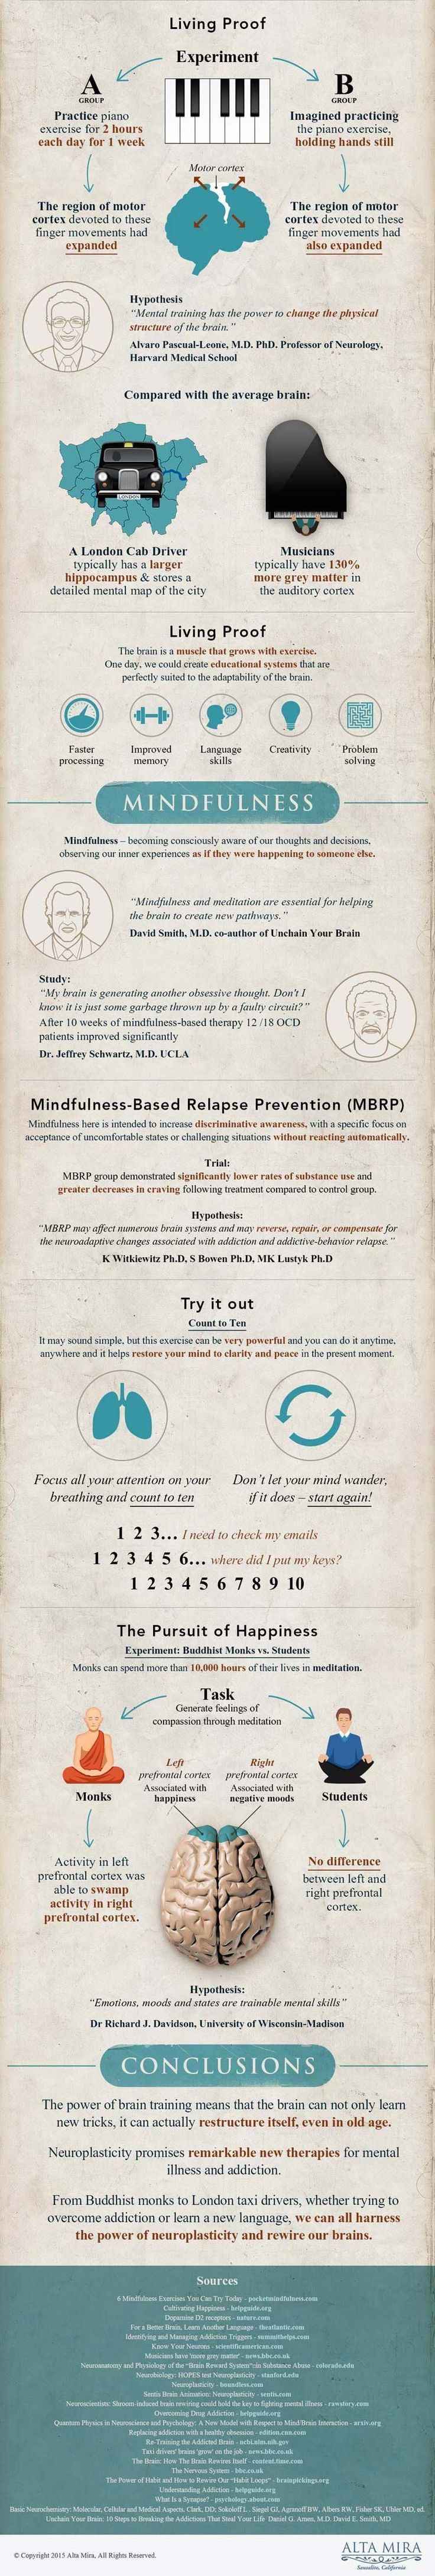 This Nifty Infographic is a Great Introduction to Neuroplasticity and Cognitive Therapy ~ ~ Did you know you can rewire your brain? Neuroscientific breakthroughs are revealing fascinating new truths about how we can control our brains to create a... ~ ~ Part Two